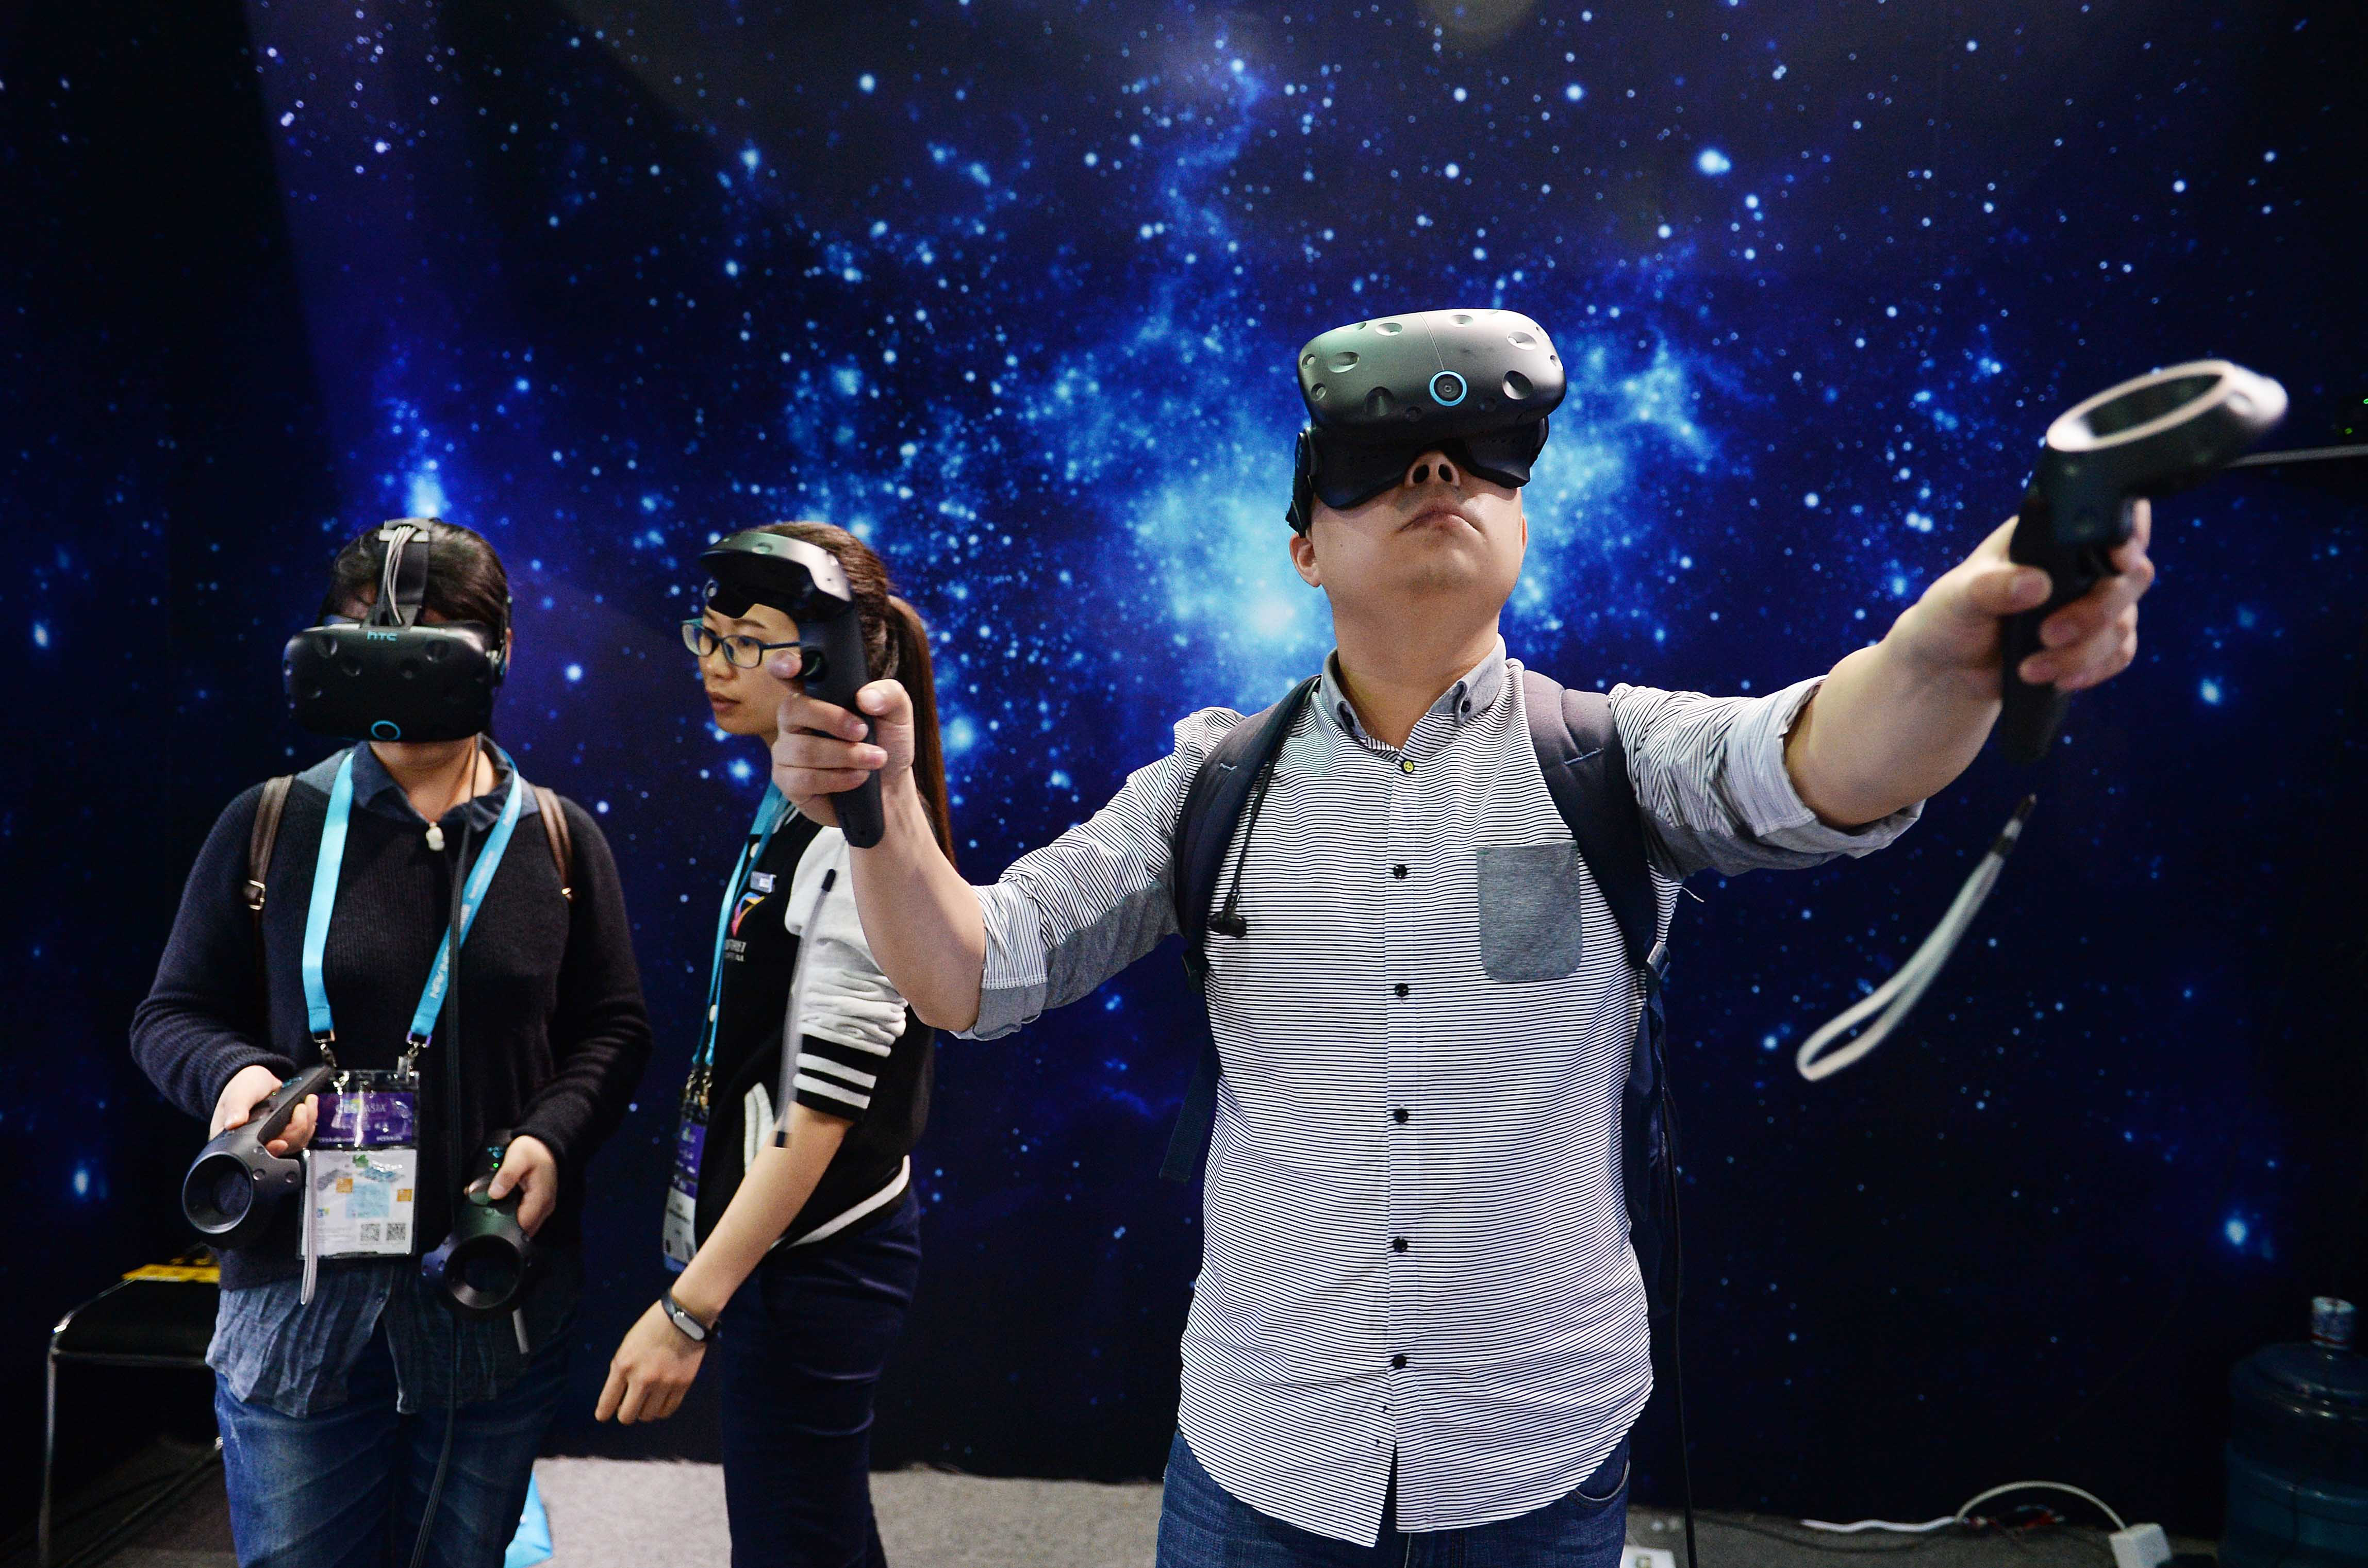 Visitors experience VR (virtual reality) devices during the CES Asia 2016 on May 11, 2016 in Shanghai, China.